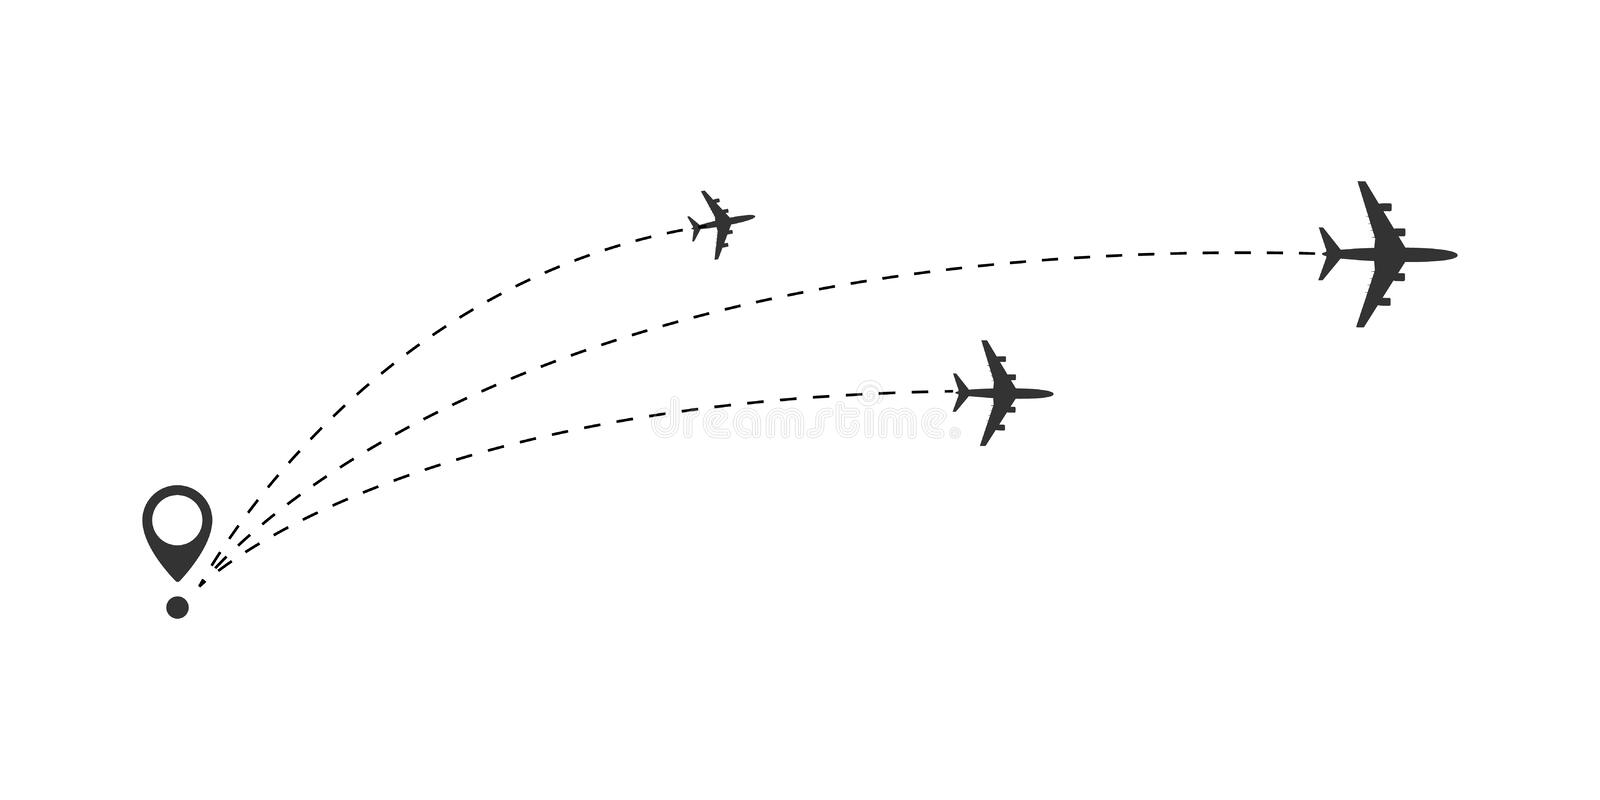 Airplane travel concept. Plane with start point and route dash line. Flight vector illustration royalty free illustration